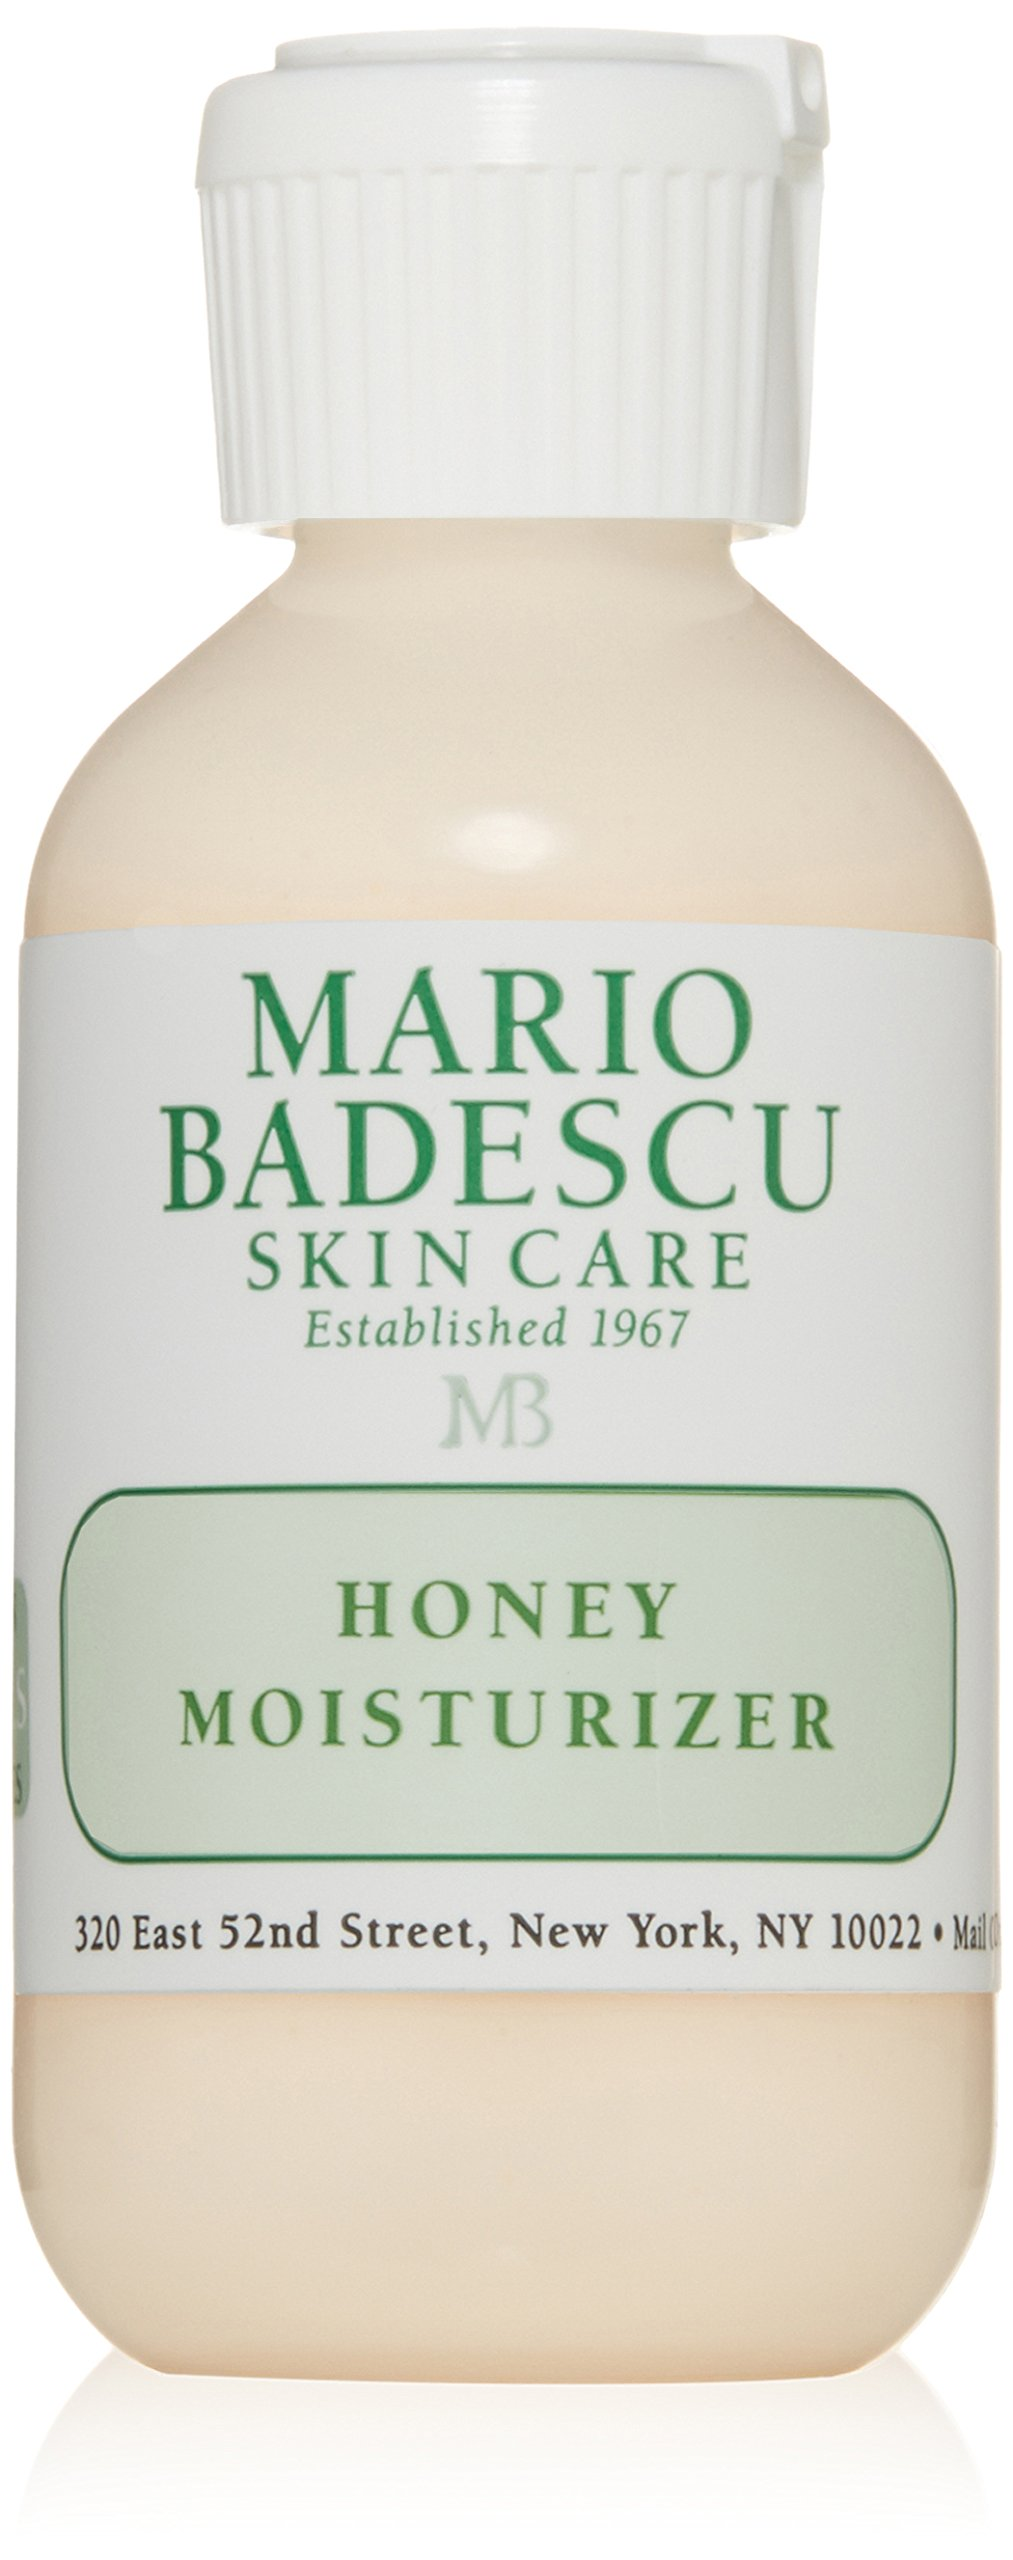 Mario Badescu Honey Moisturizer, 2 oz.